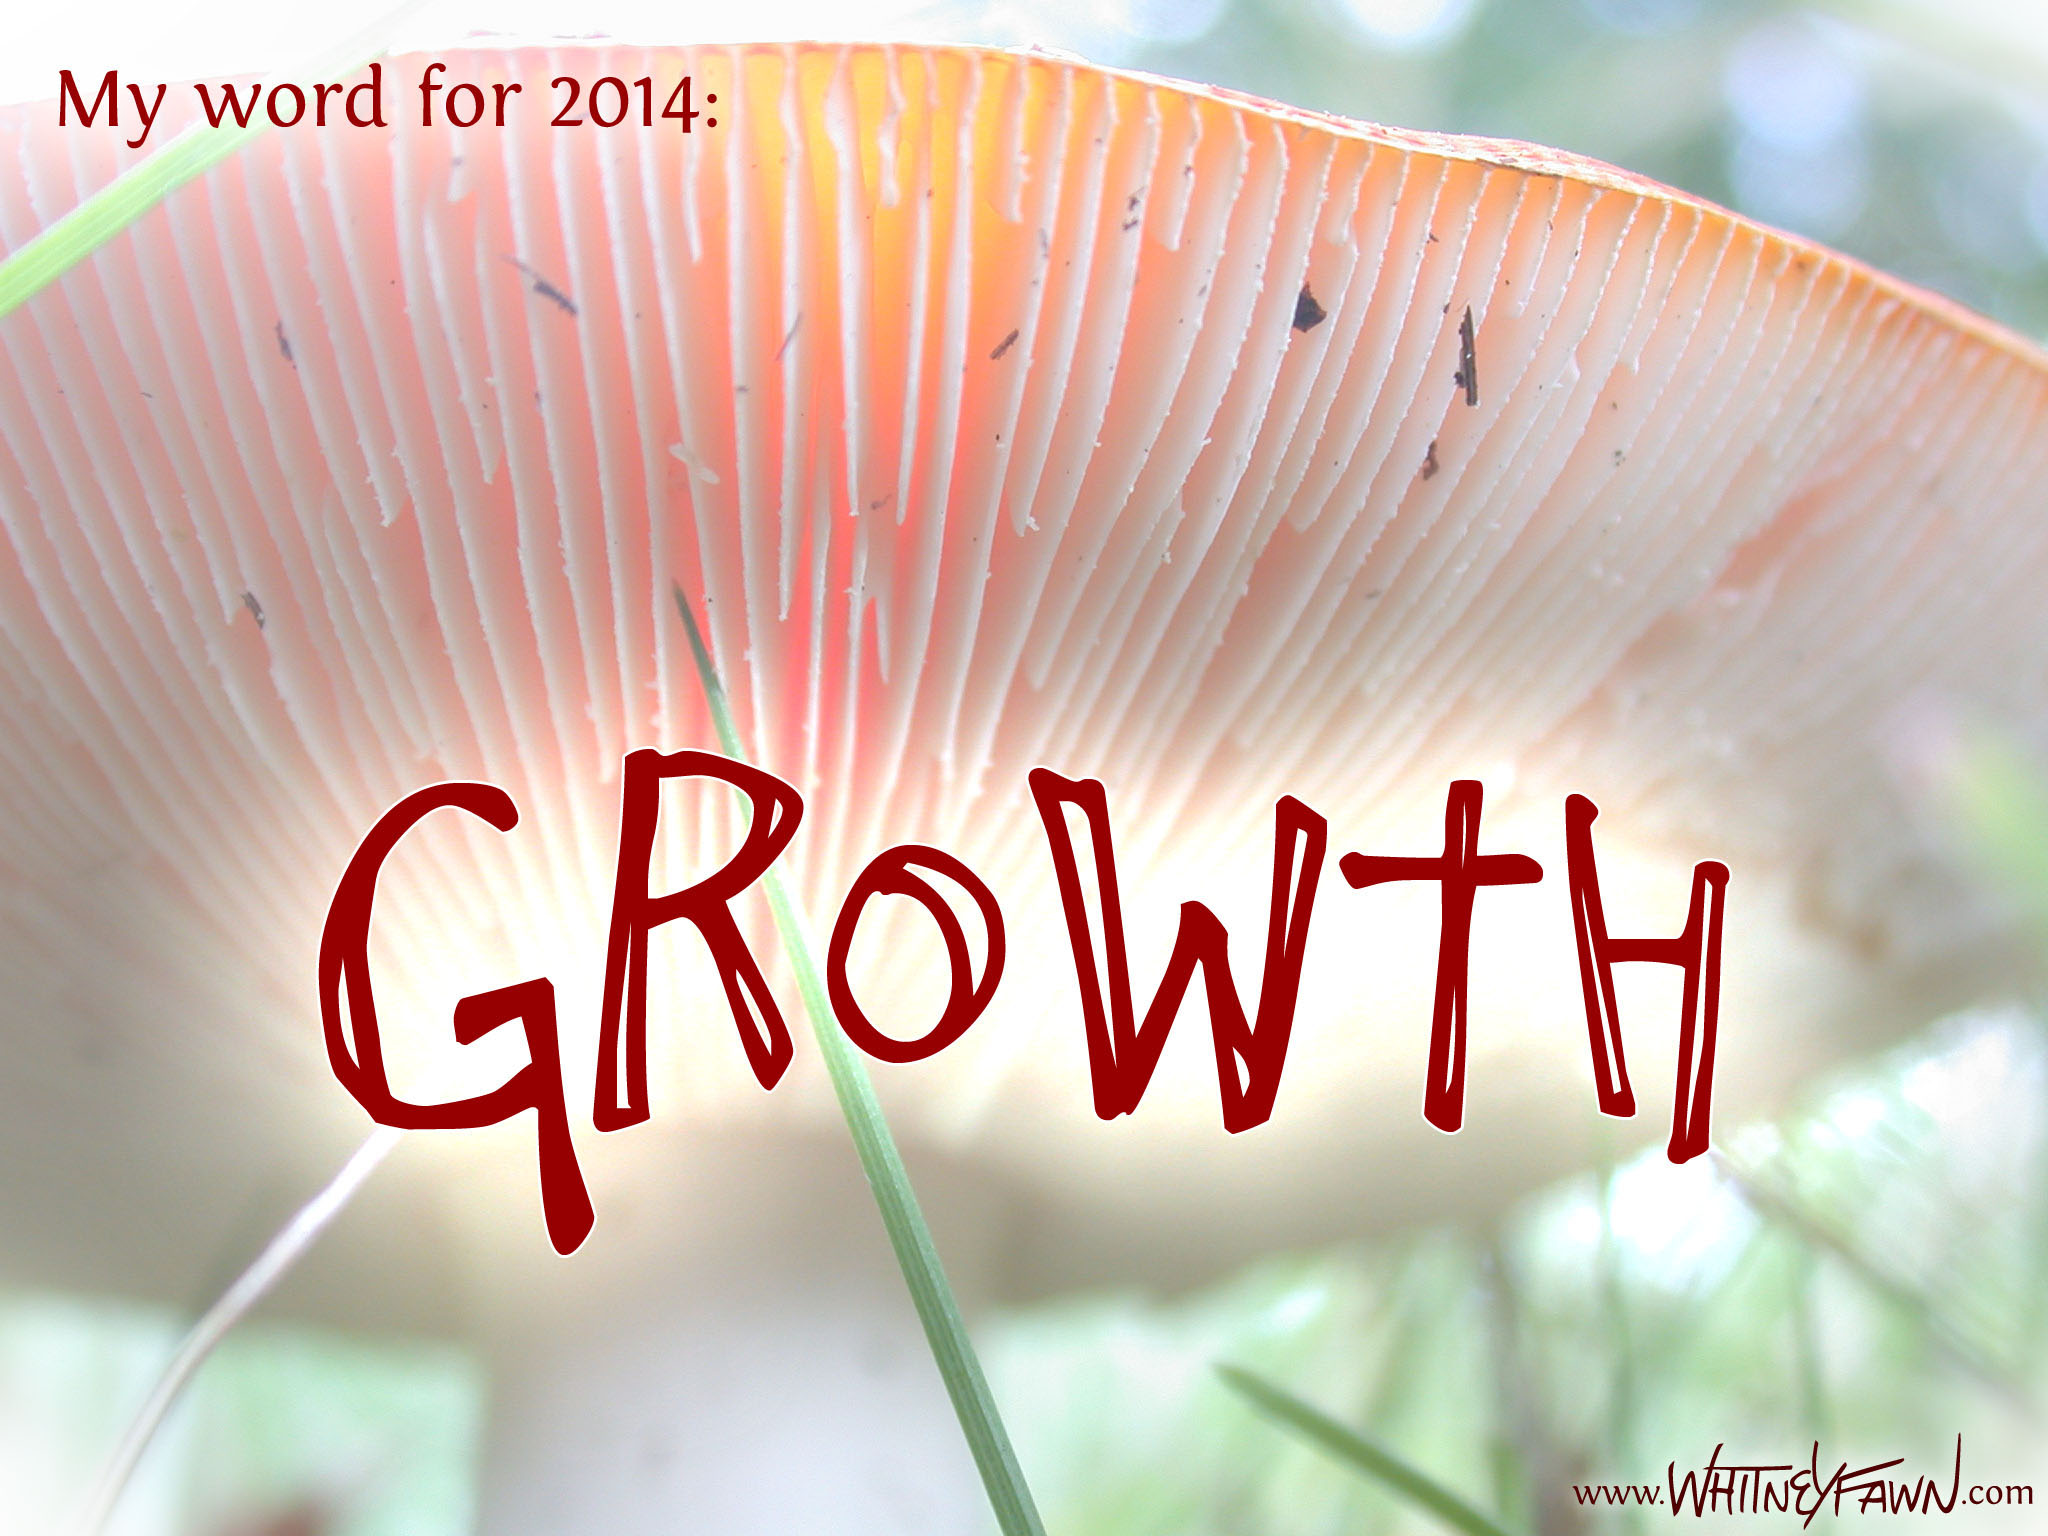 My word for 2014 is Growth